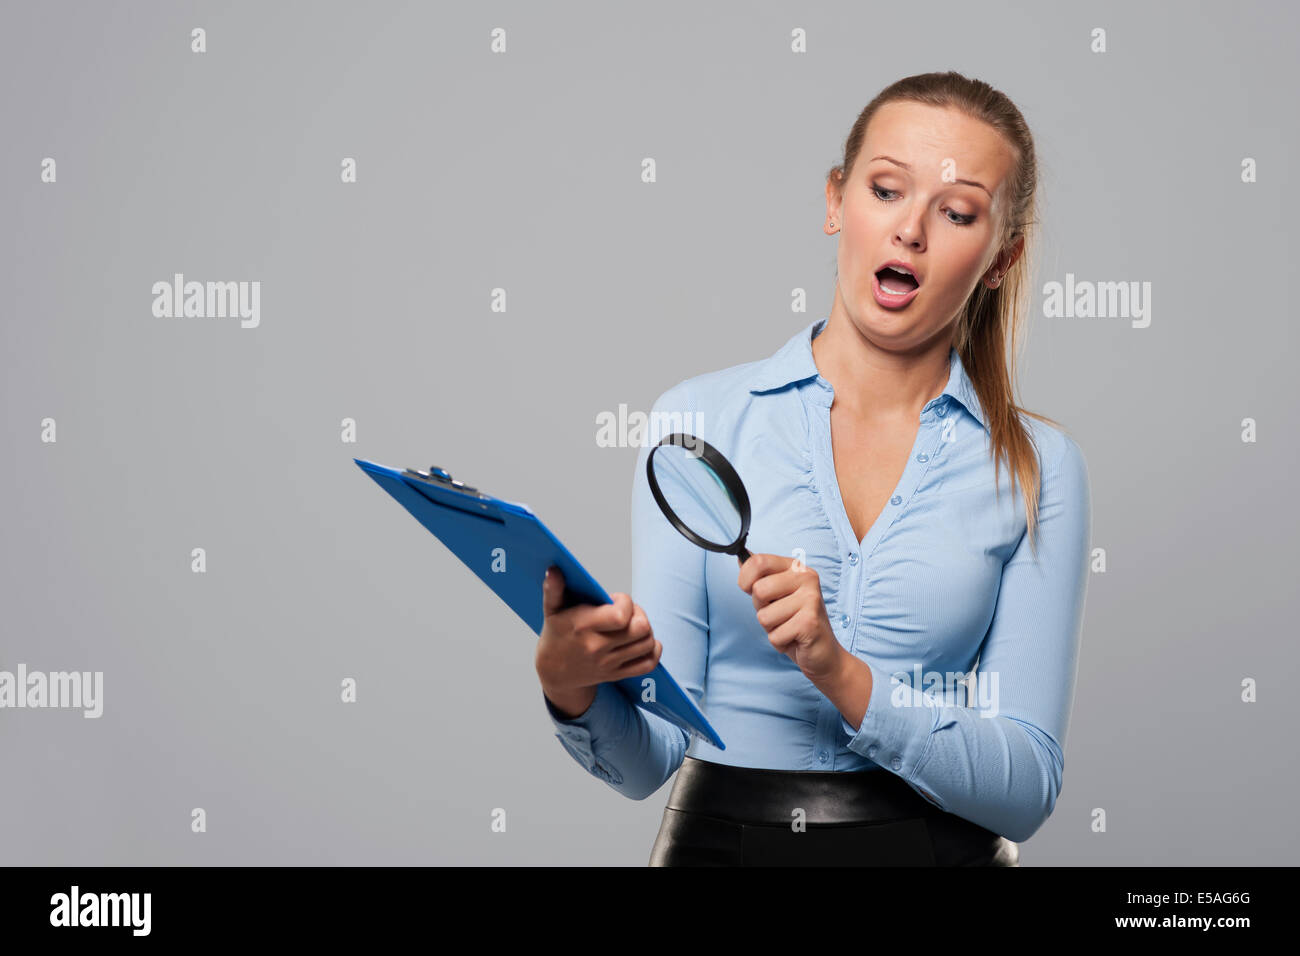 Shocked woman looking at office documents with magnifier, Debica, Poland - Stock Image